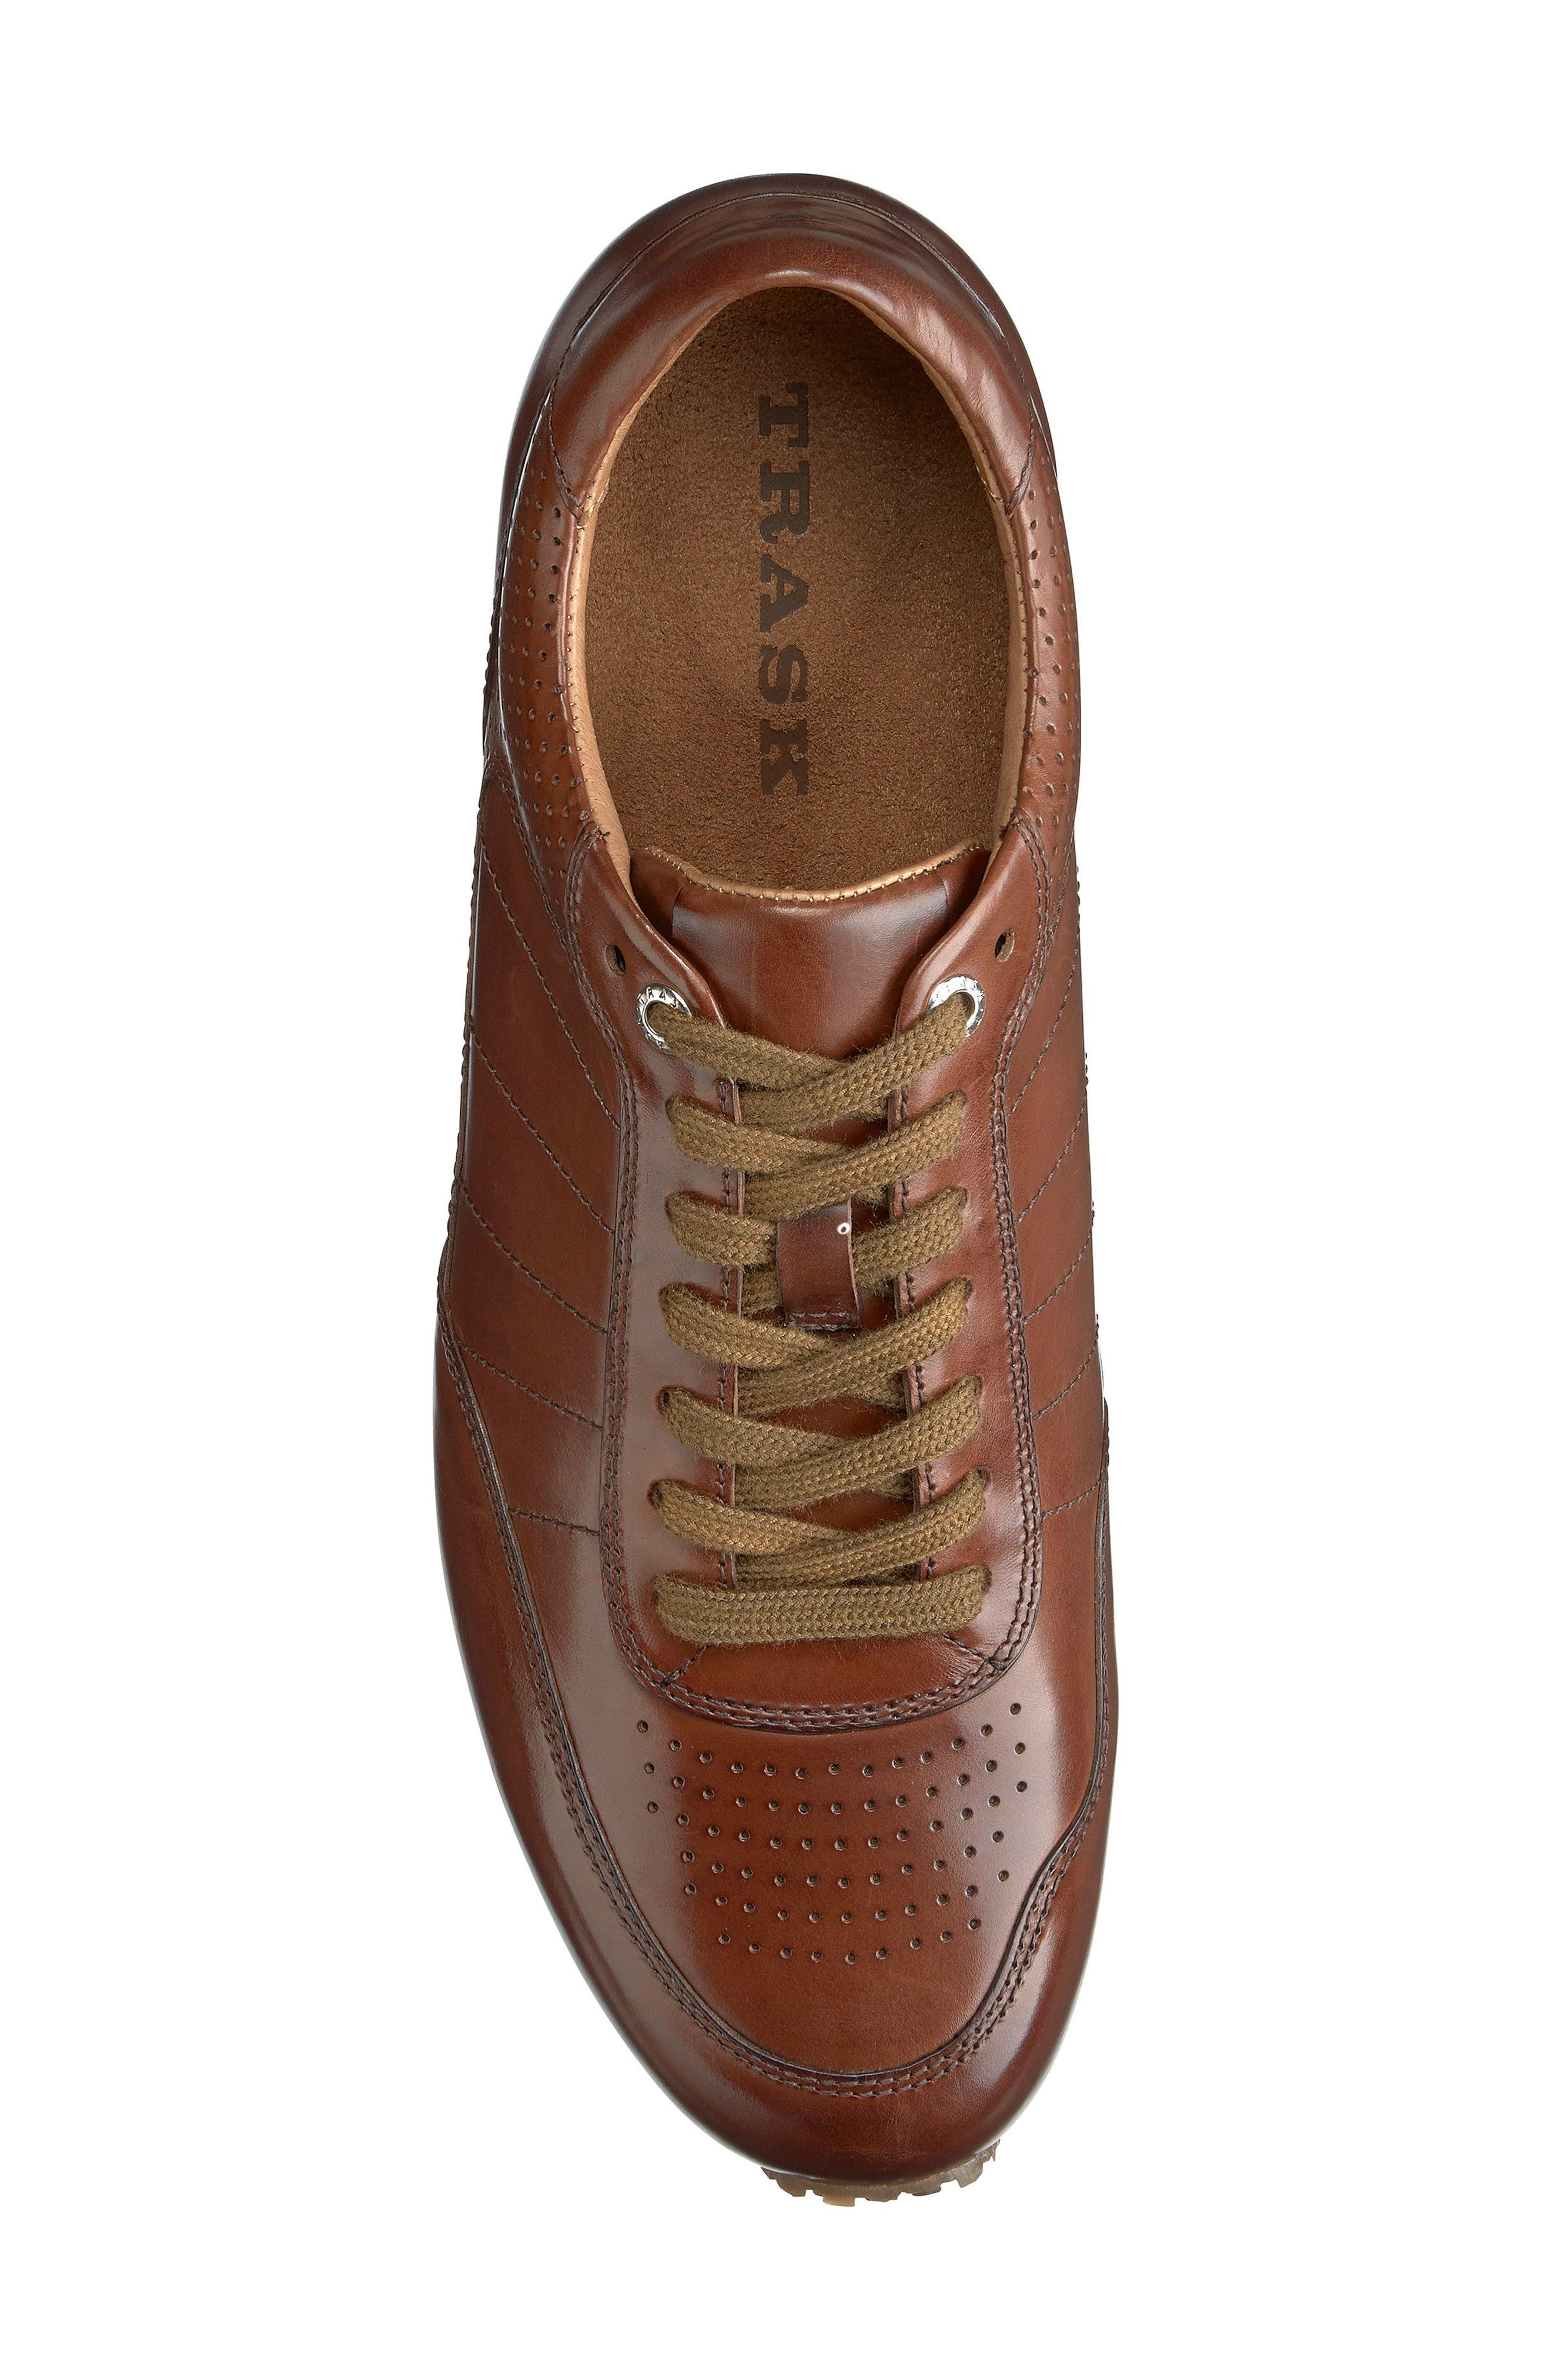 Aiden Sneaker,                             Alternate thumbnail 5, color,                             Brown Leather